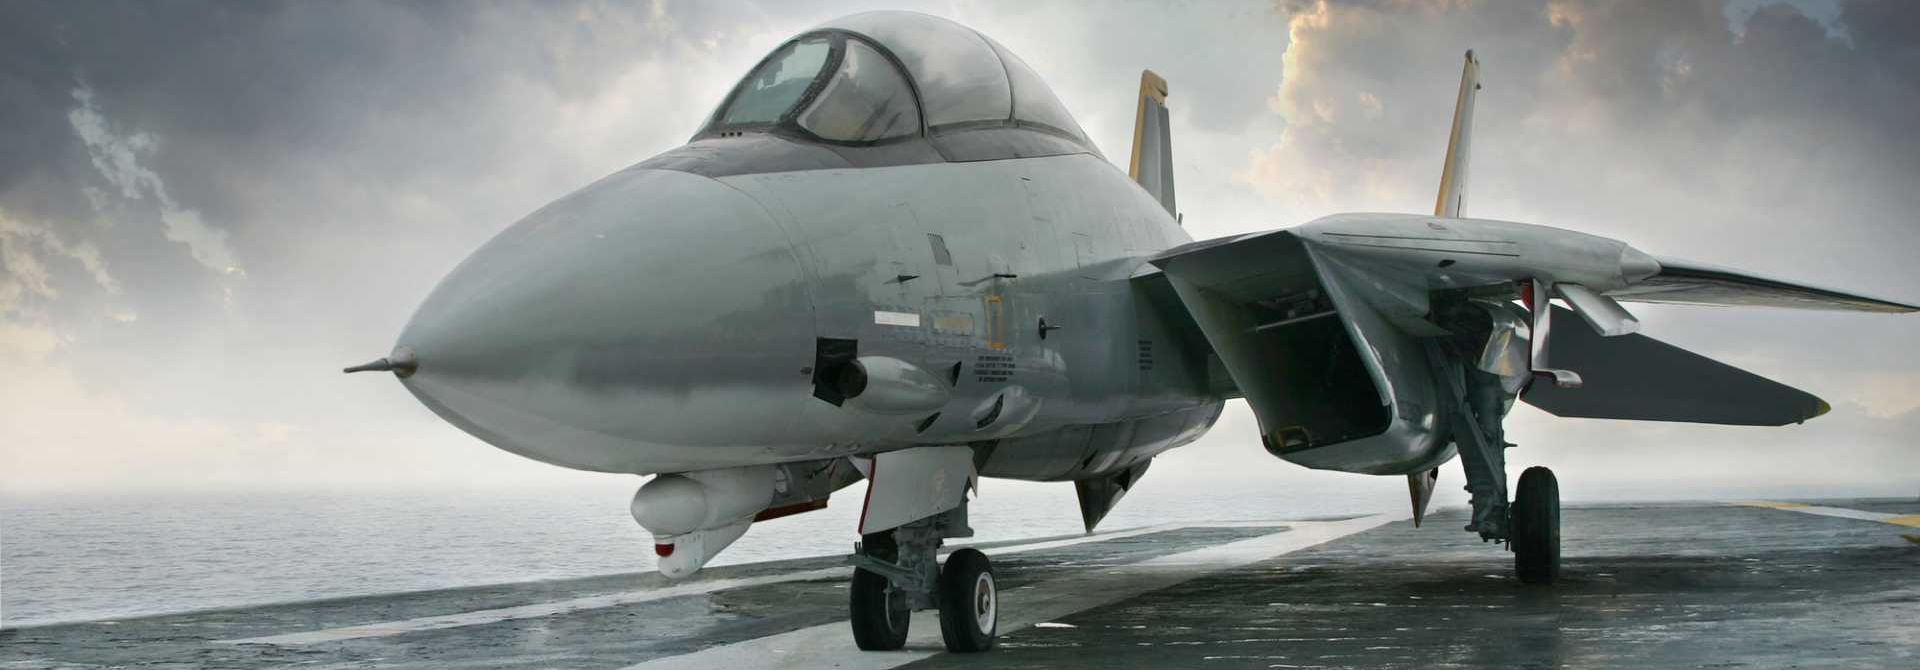 CROP F-14 jet fighter on an aircraft carrier deck beneath dramatic sky – stock image courtesy of Depositphotos.